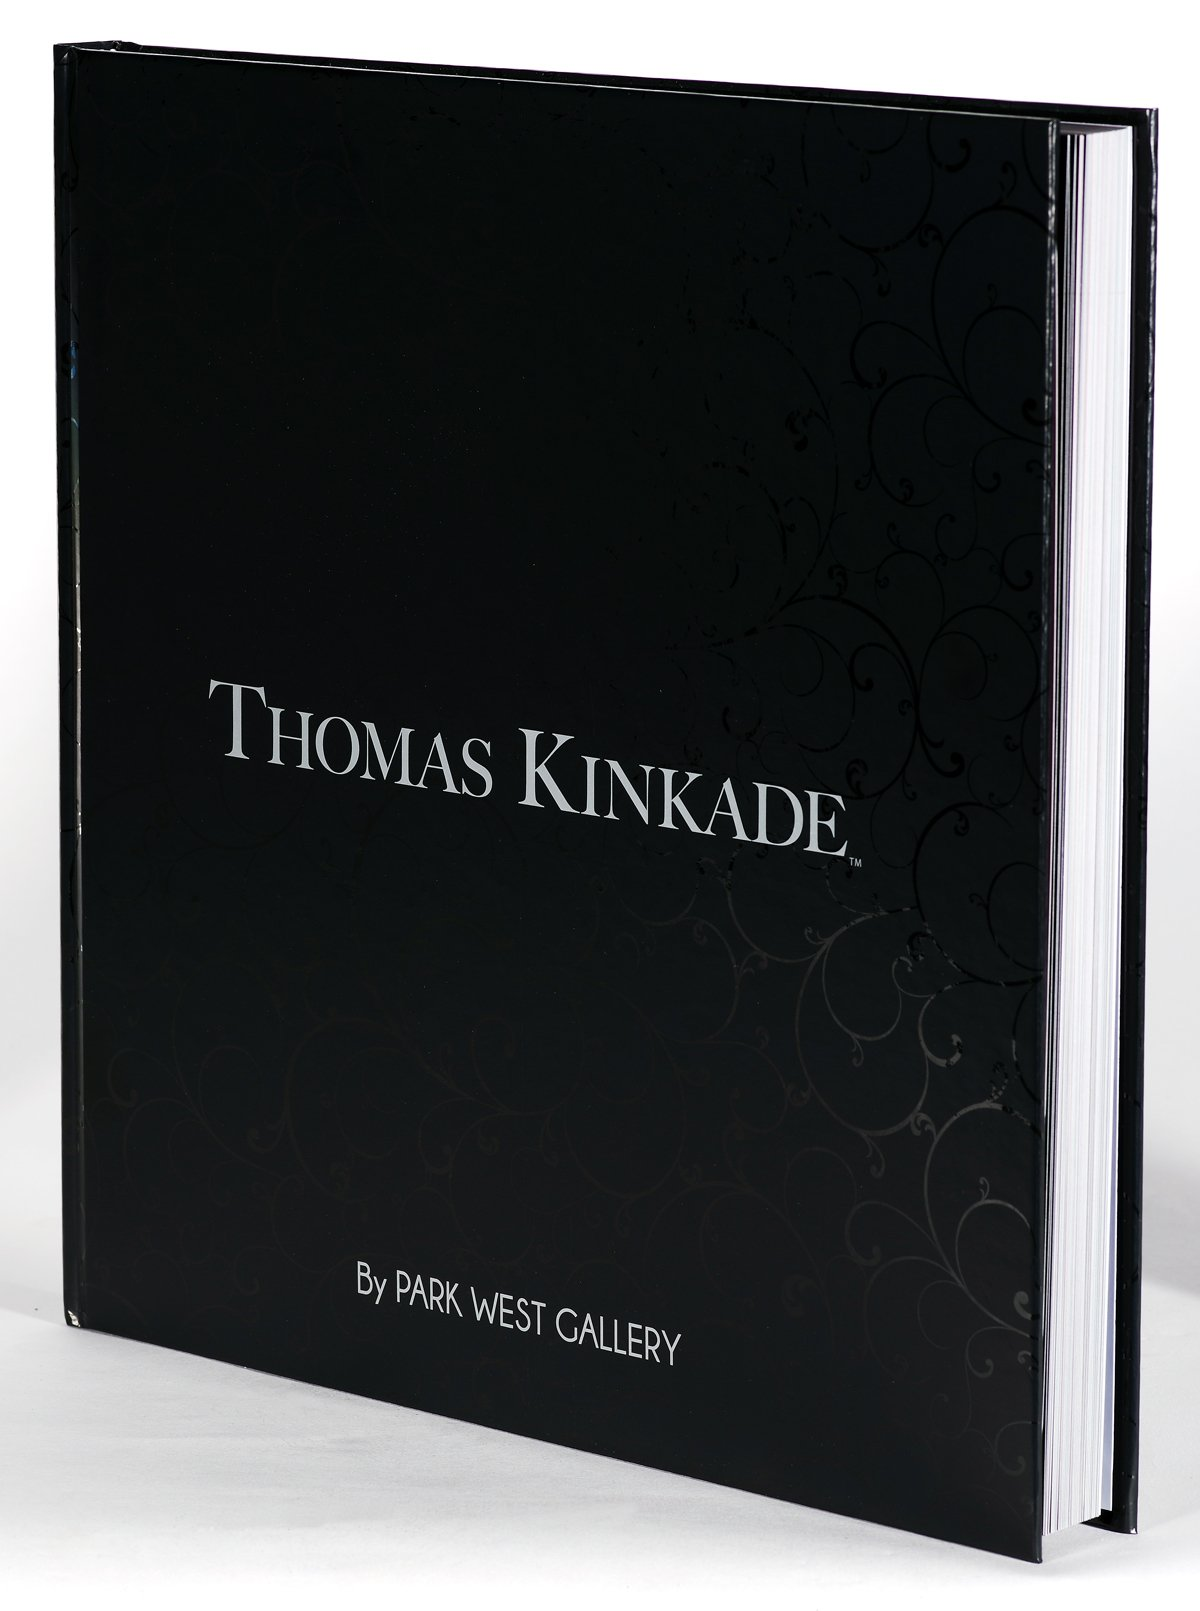 Thomas Kinkade by Park West Gallery ebook